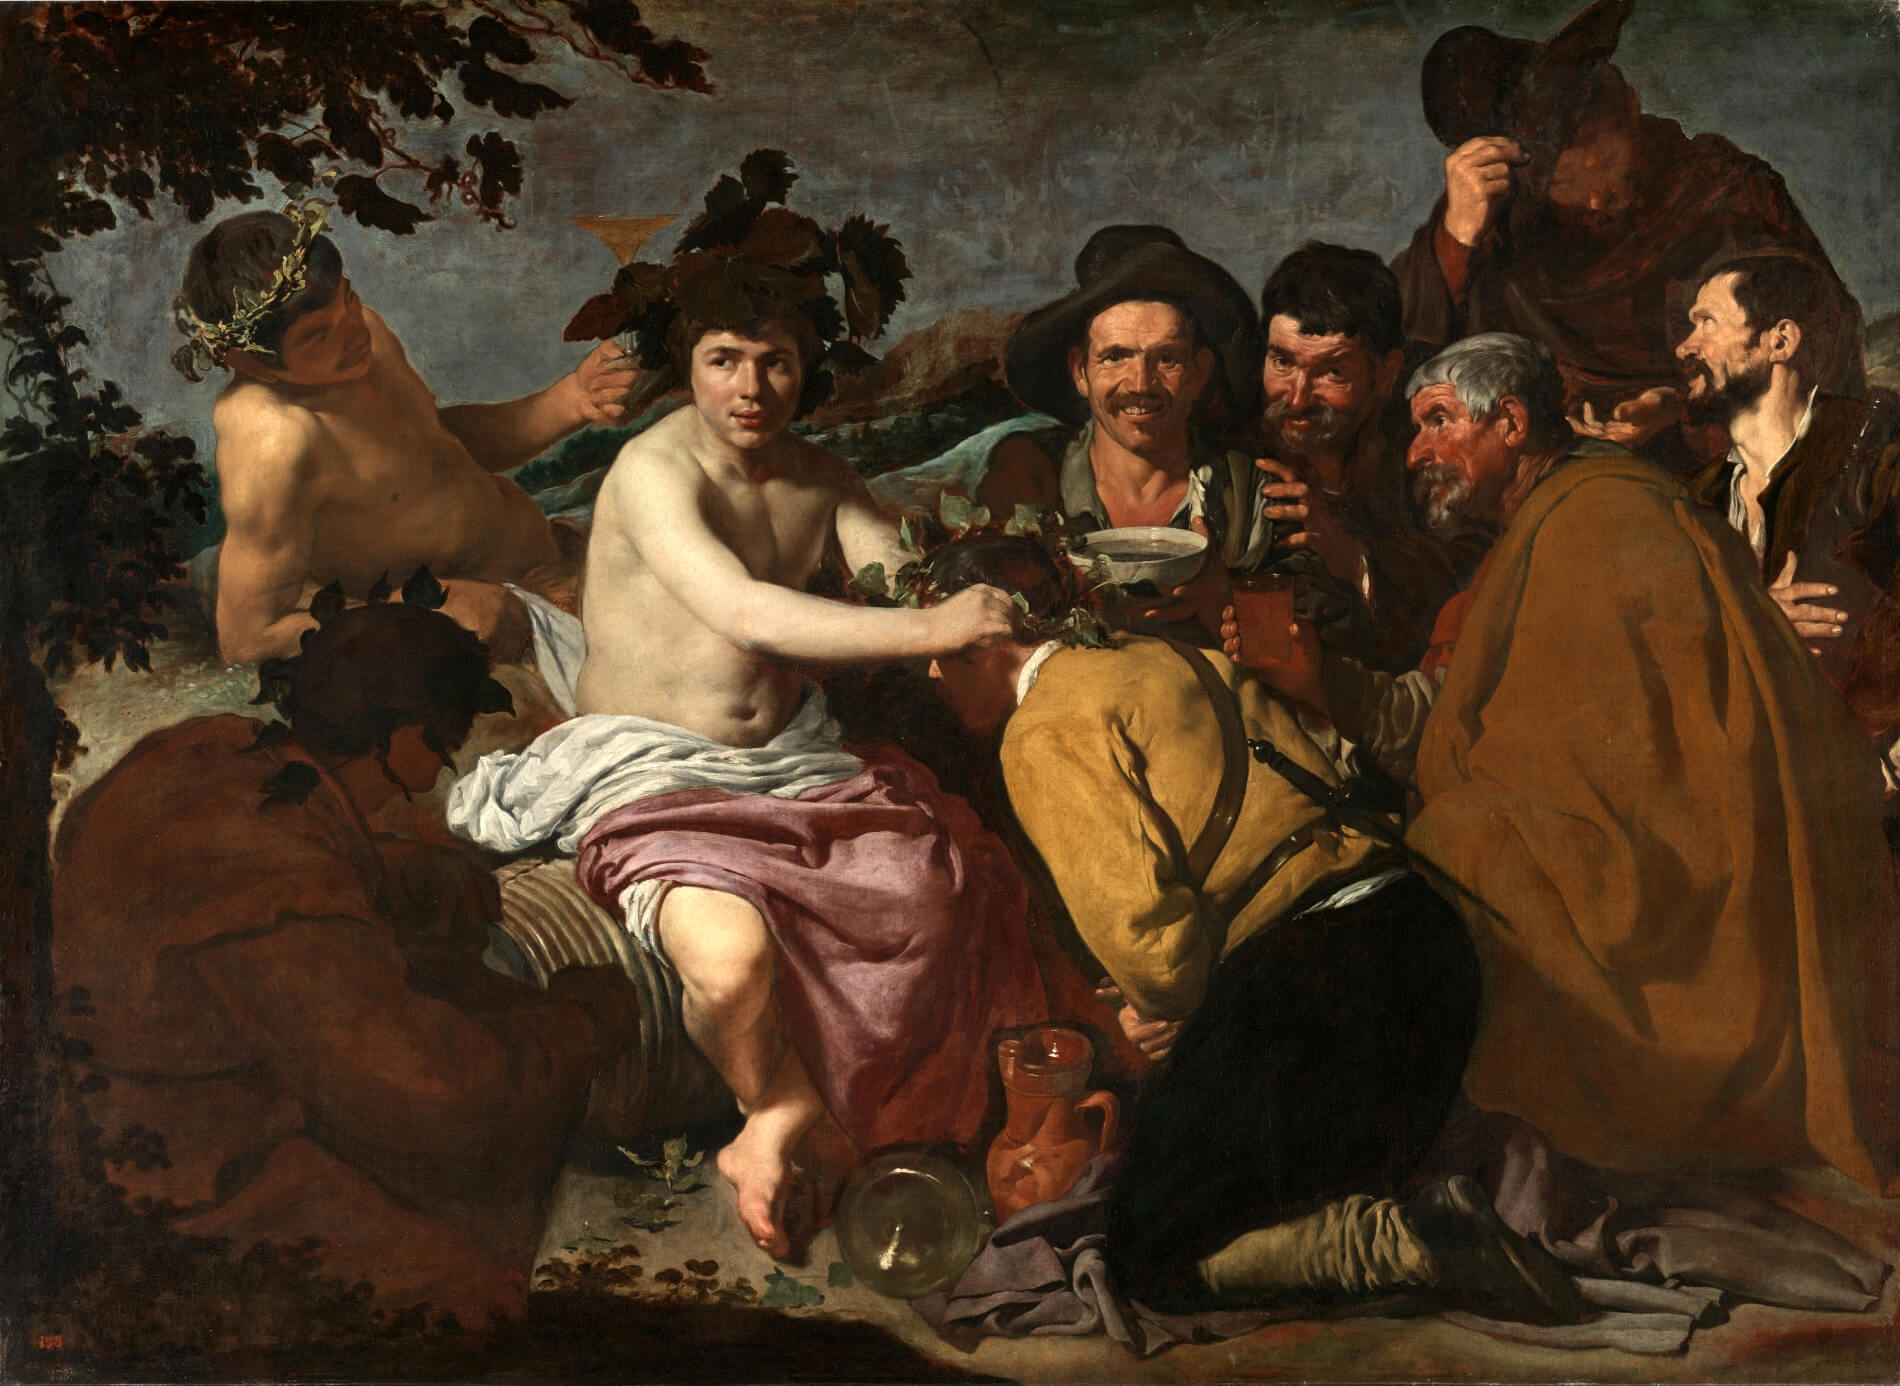 Diego Velázquez, The Triumph of Bacchus, 1628-1629, oil on canvas, 65 in × 89 inches, (Museo del Prado, Madrid)